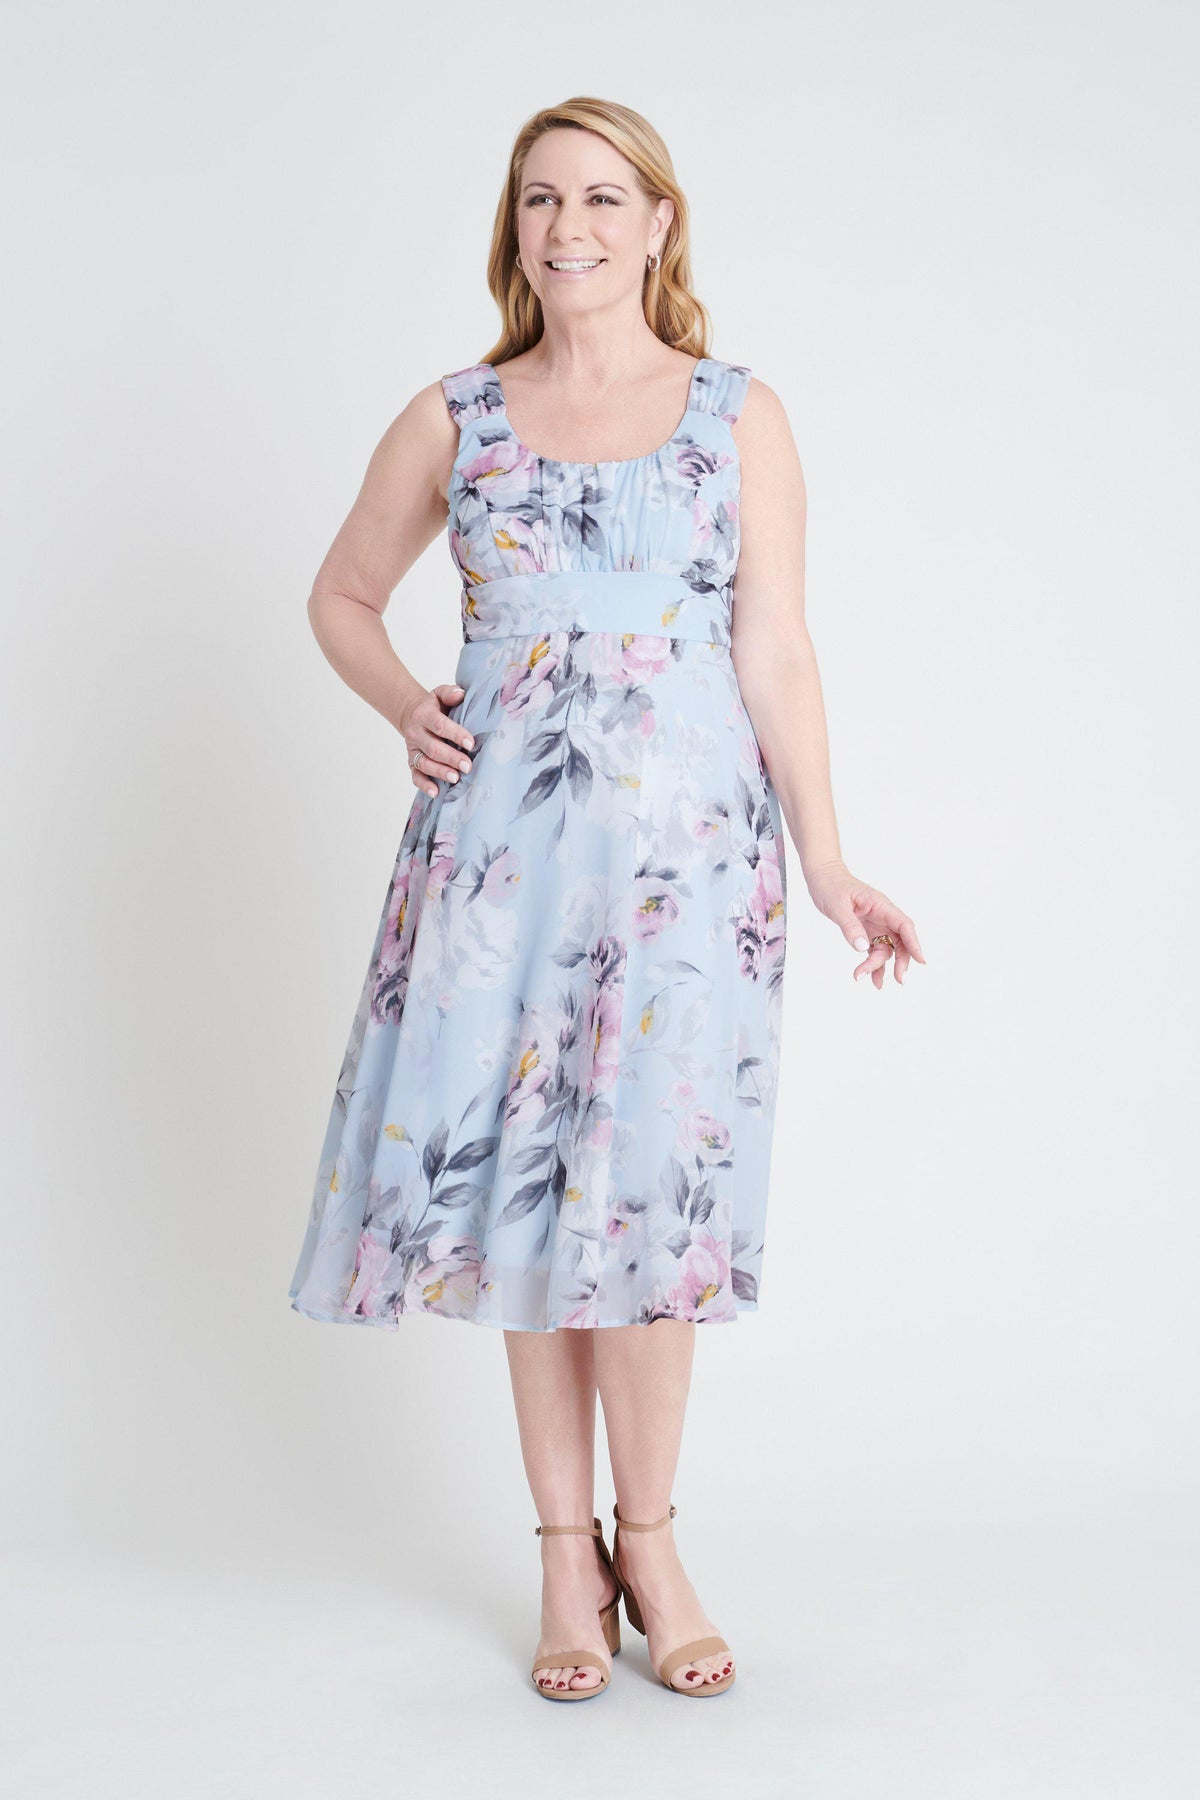 Woman posing wearing Aqua Carly Aqua Floral Print Midi Dress from Connected Apparel